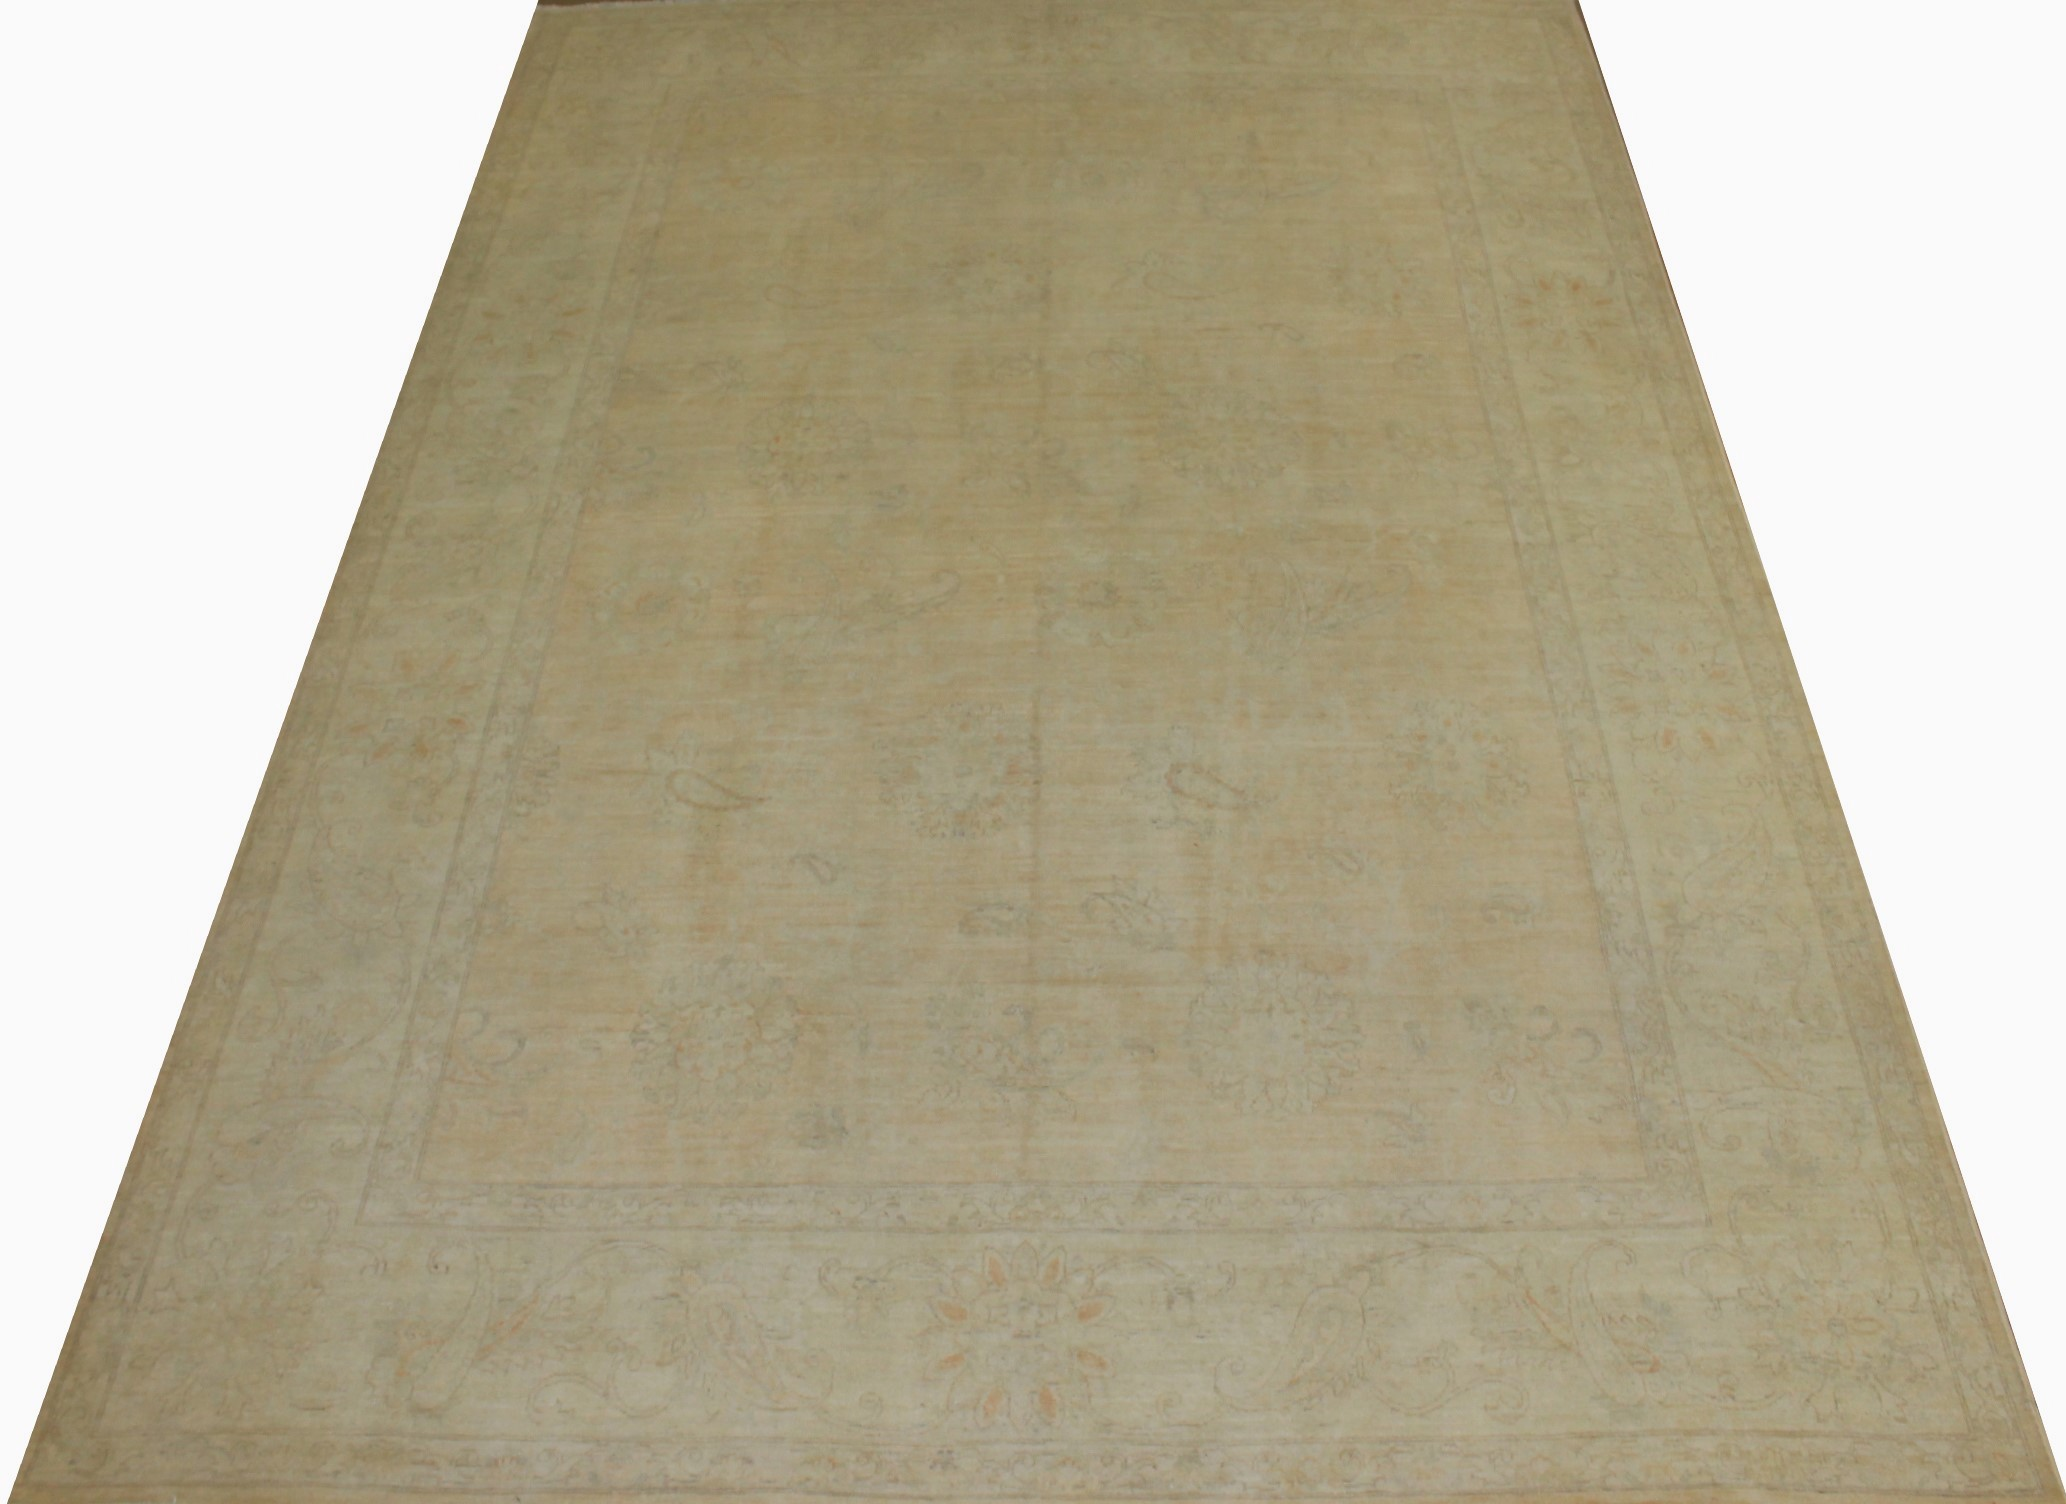 10x14 Peshawar Hand Knotted Wool Area Rug - MR16409